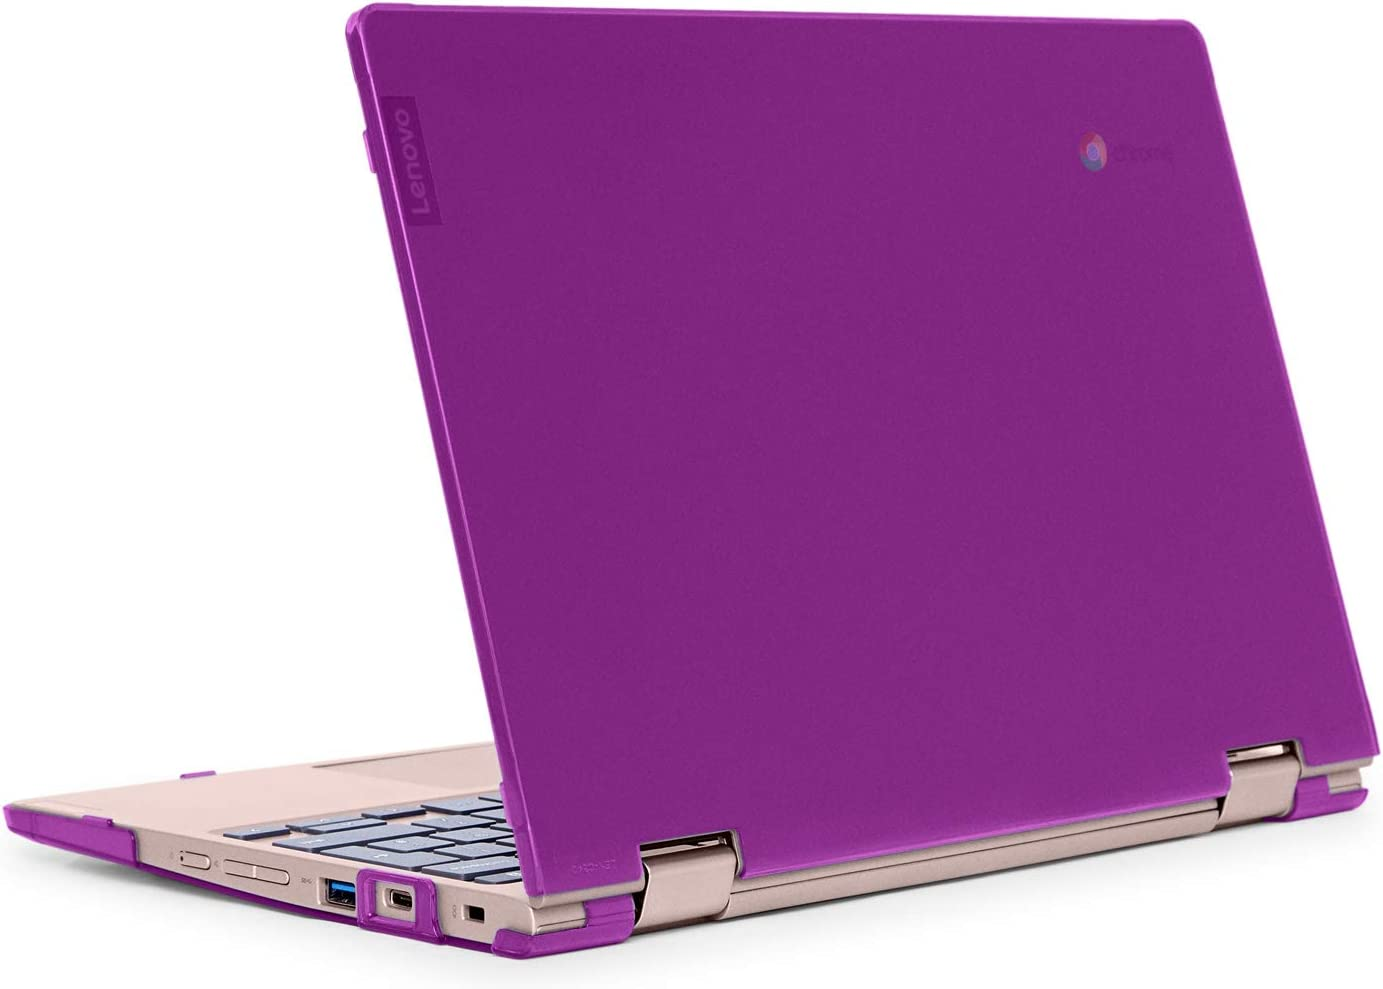 """mCover Hard Shell Case for Late-2019 11.6"""" Lenovo C340 Series 2-in-1 Convertible Chromebook Laptop (NOT Fitting Lenovo C330 N21 N22 N23 N24 100E 300E 500E Flex 11 Yoga 11e) (LEN-C340 Purple)"""